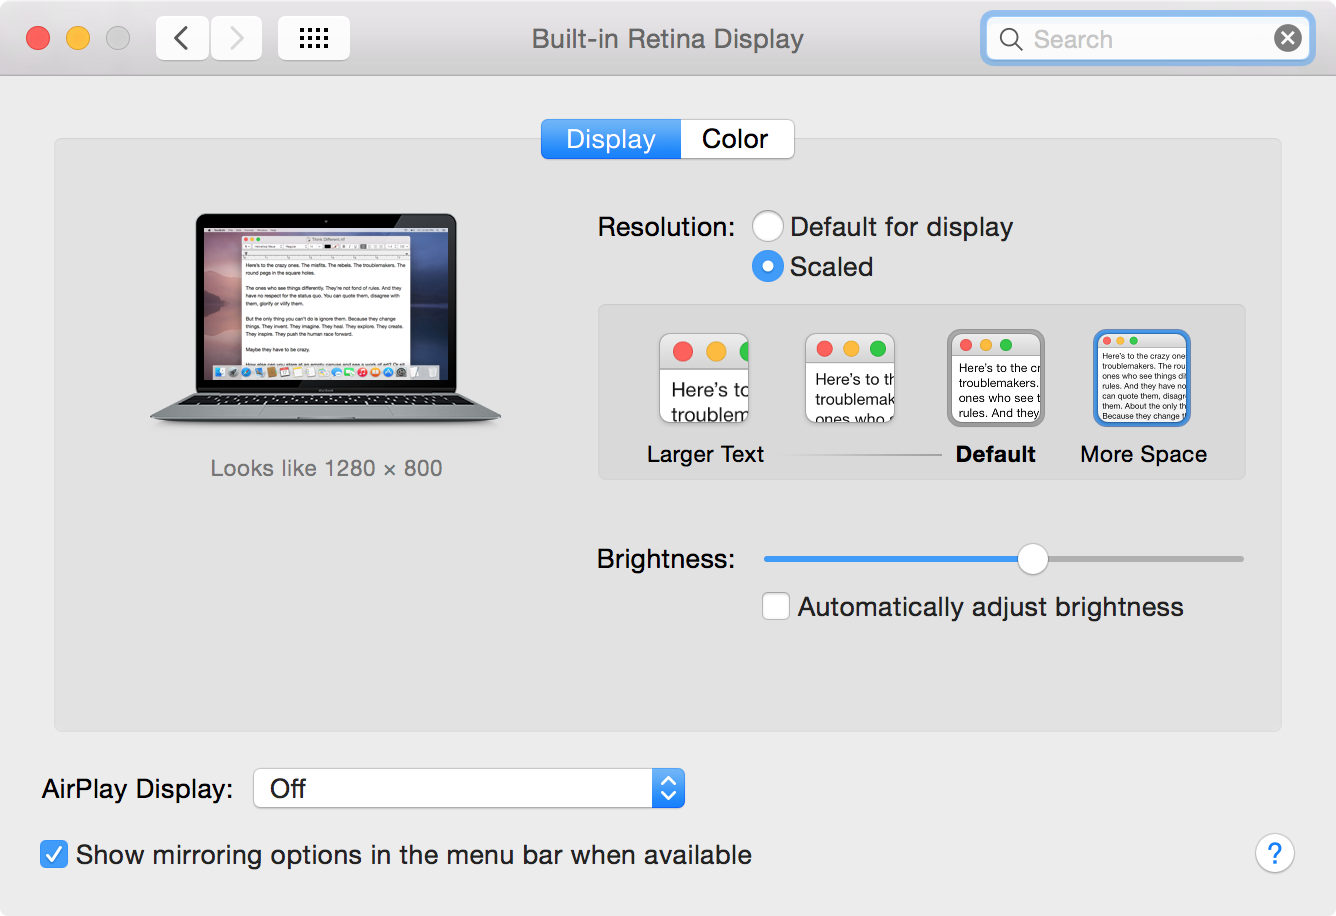 The MacBook's screen looks like a 1280×800 panel out of the box, and by default it will go up to 1440×900.